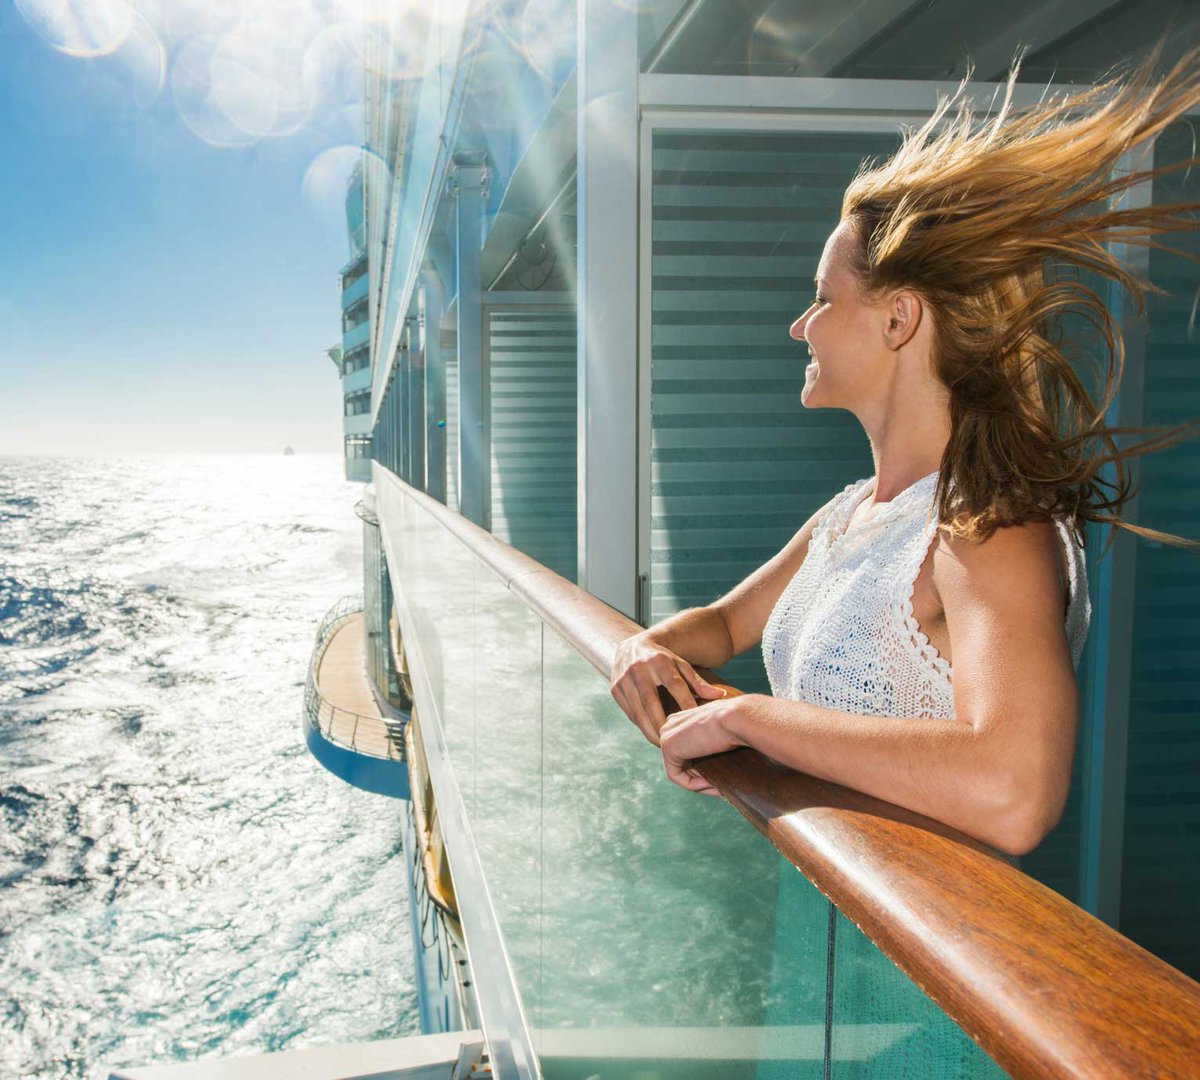 Thinking of a cruise this year? You bet! Read our new cruise ship guide for inspiration - https://t.co/3gq4kJaTSX #cruise #cruiseboom #newcruisehips #cruisehips #newships #2019cruises https://t.co/TvqJQWtO4a